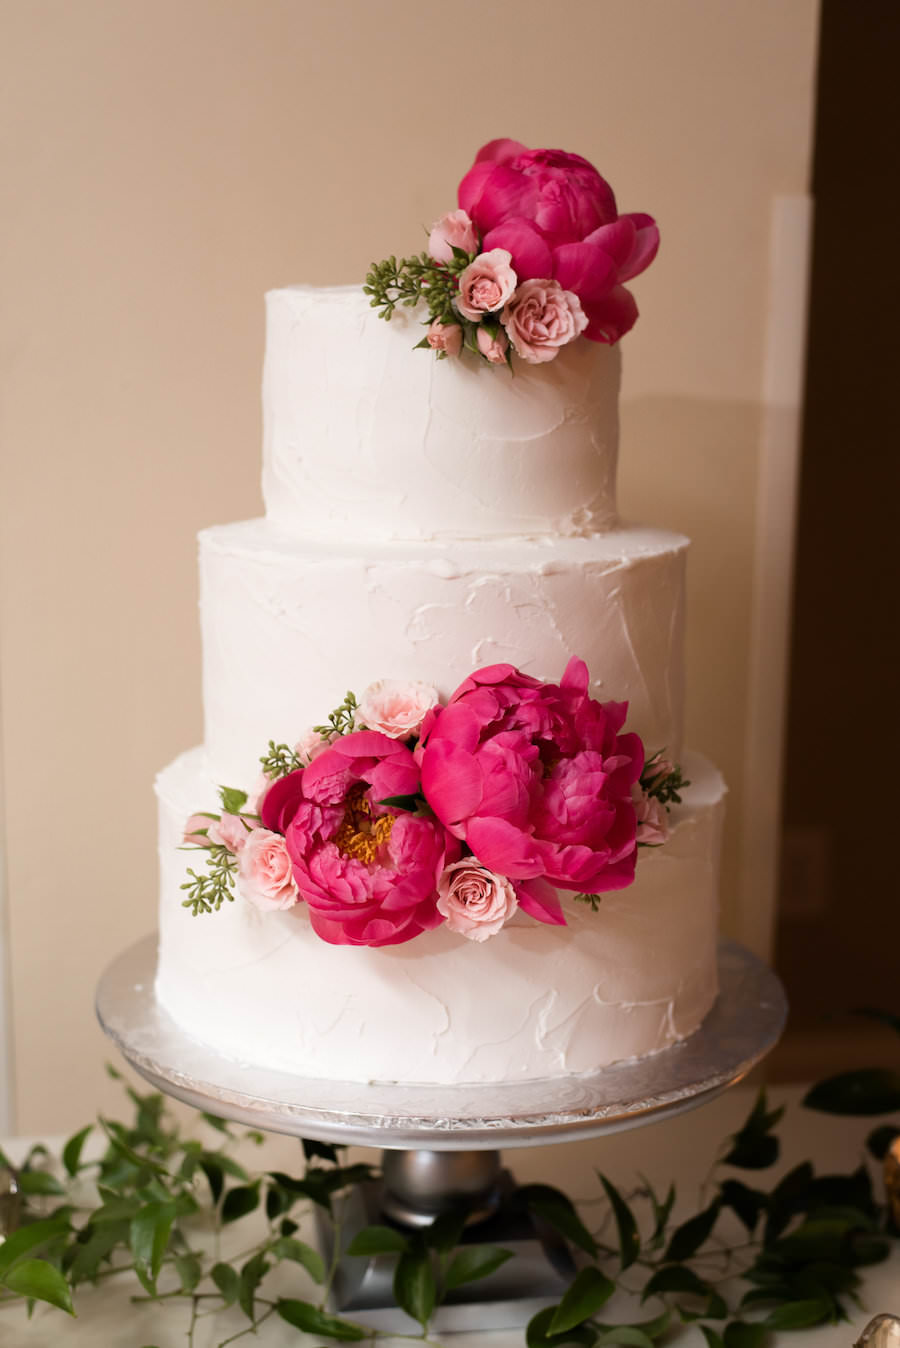 Three-Tiered, Round, White Wedding Cake with Pink Peony Wedding Accents